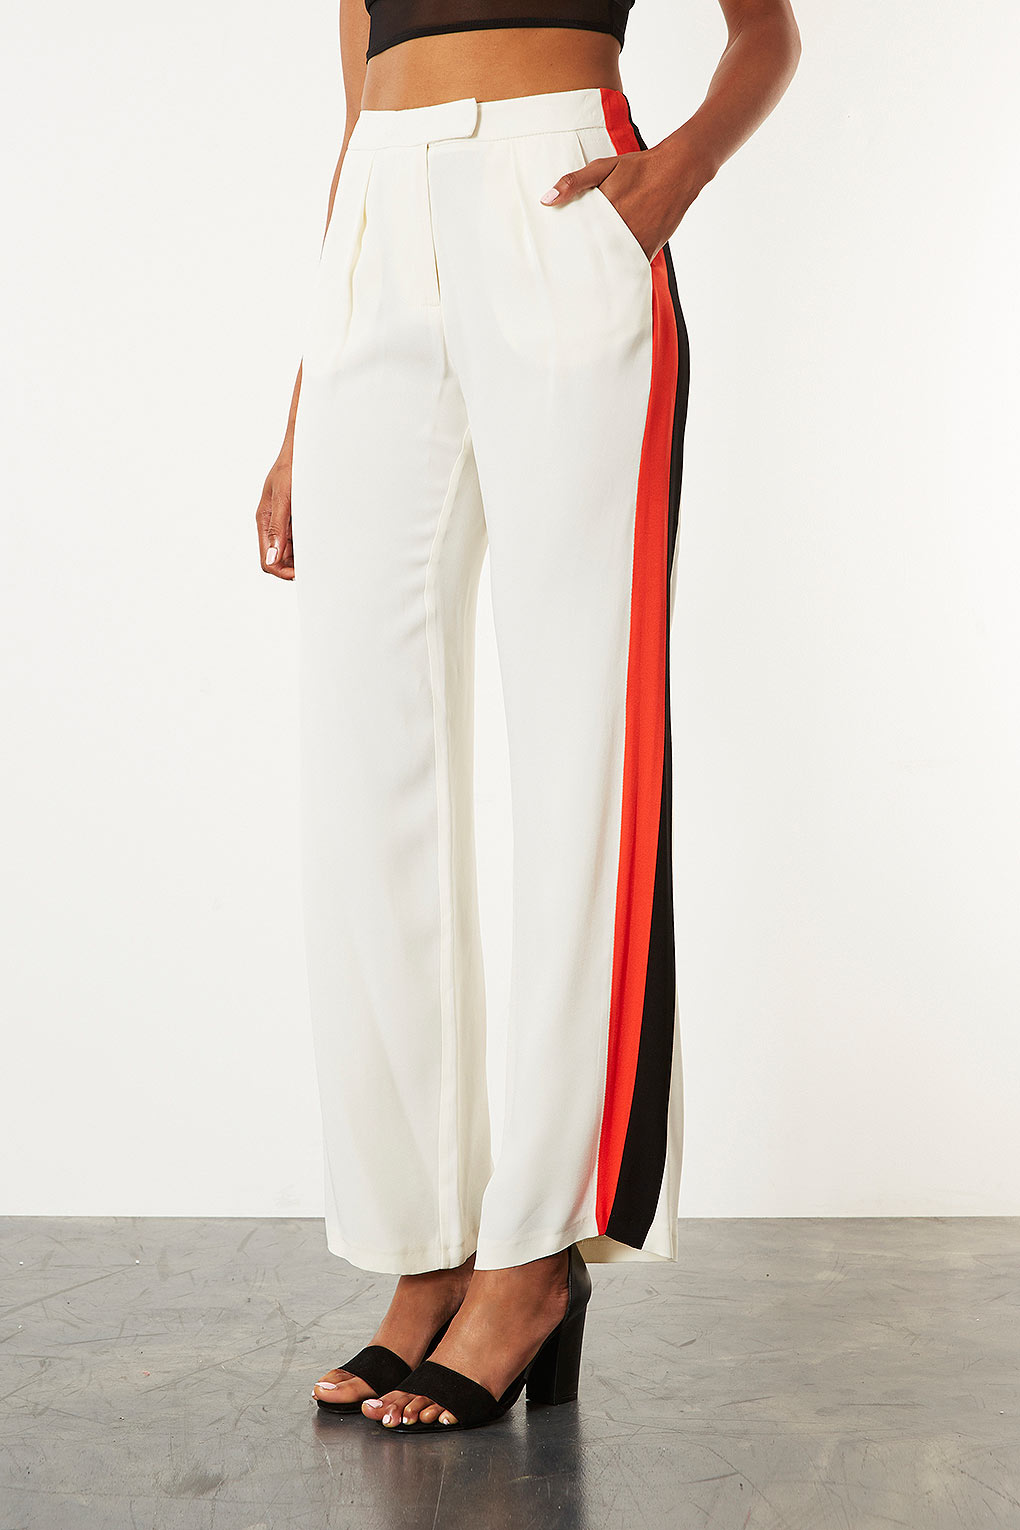 Topshop Womens Wide Leg Striped Trousers - Explore Cheap Price Really Online Cheap Sale Purchase 7NdfSFq